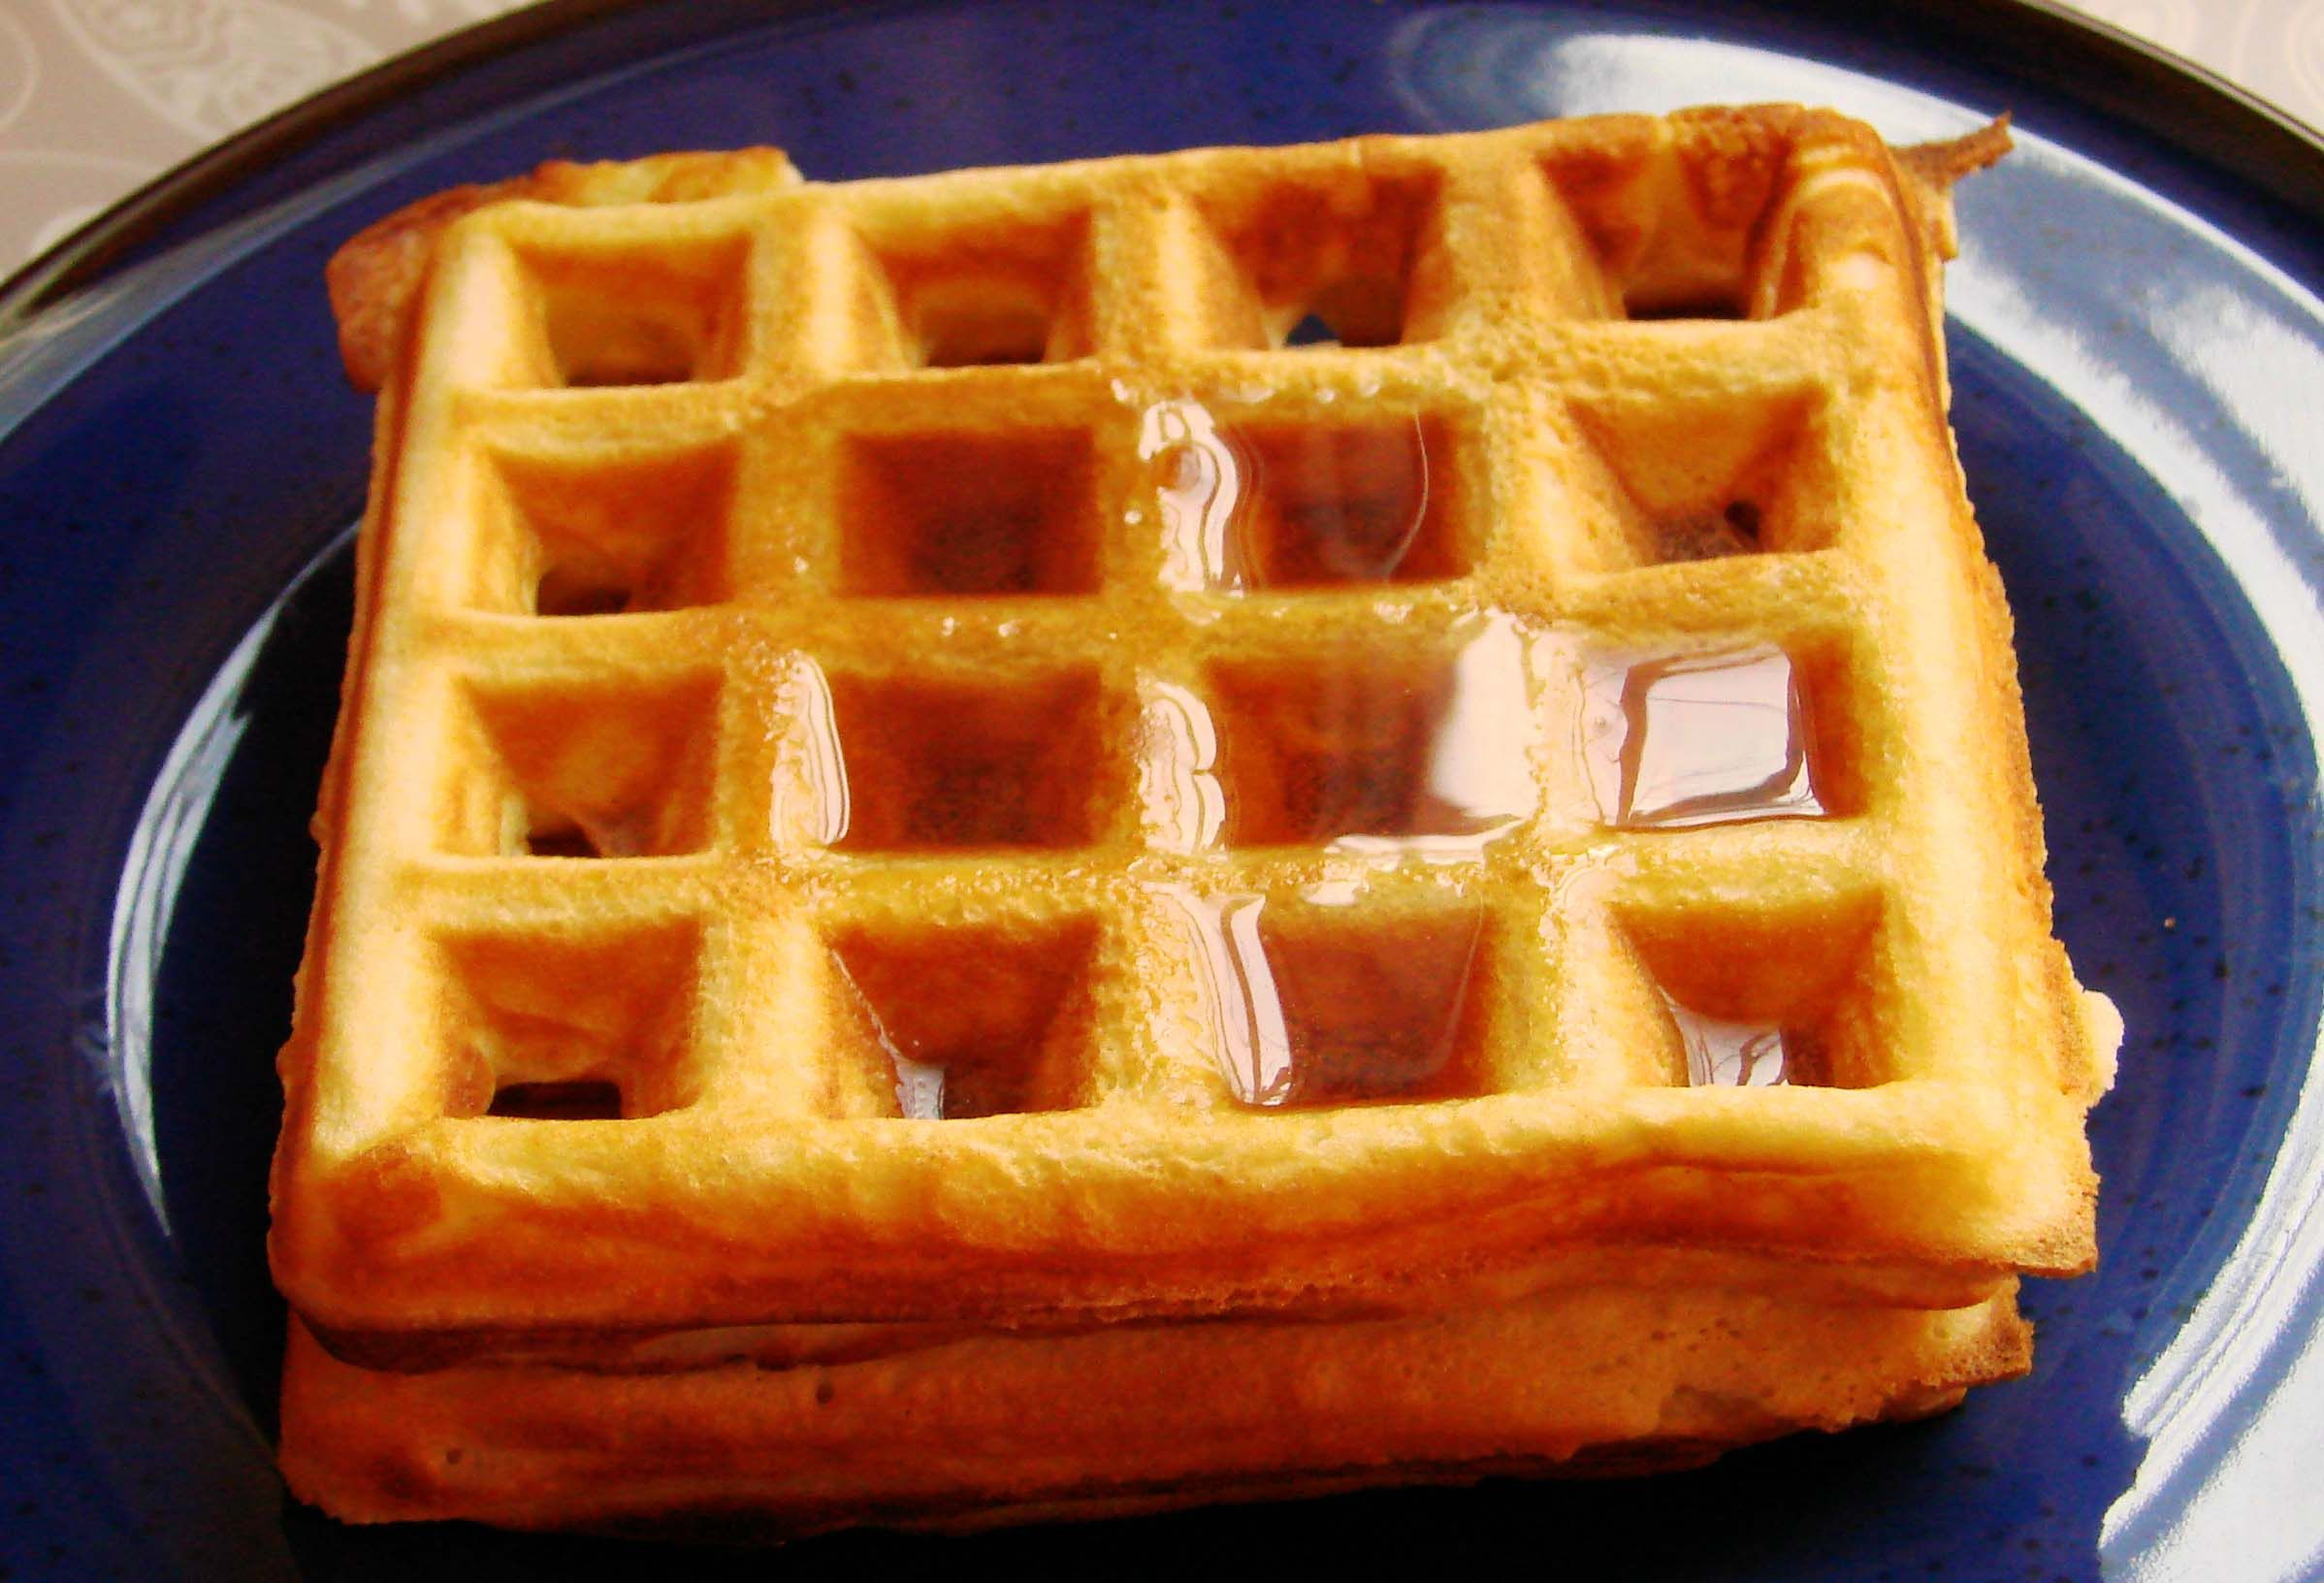 0bd9720927df576f0d297032a78f368c - Better Homes And Gardens Cookbook Waffle Recipe